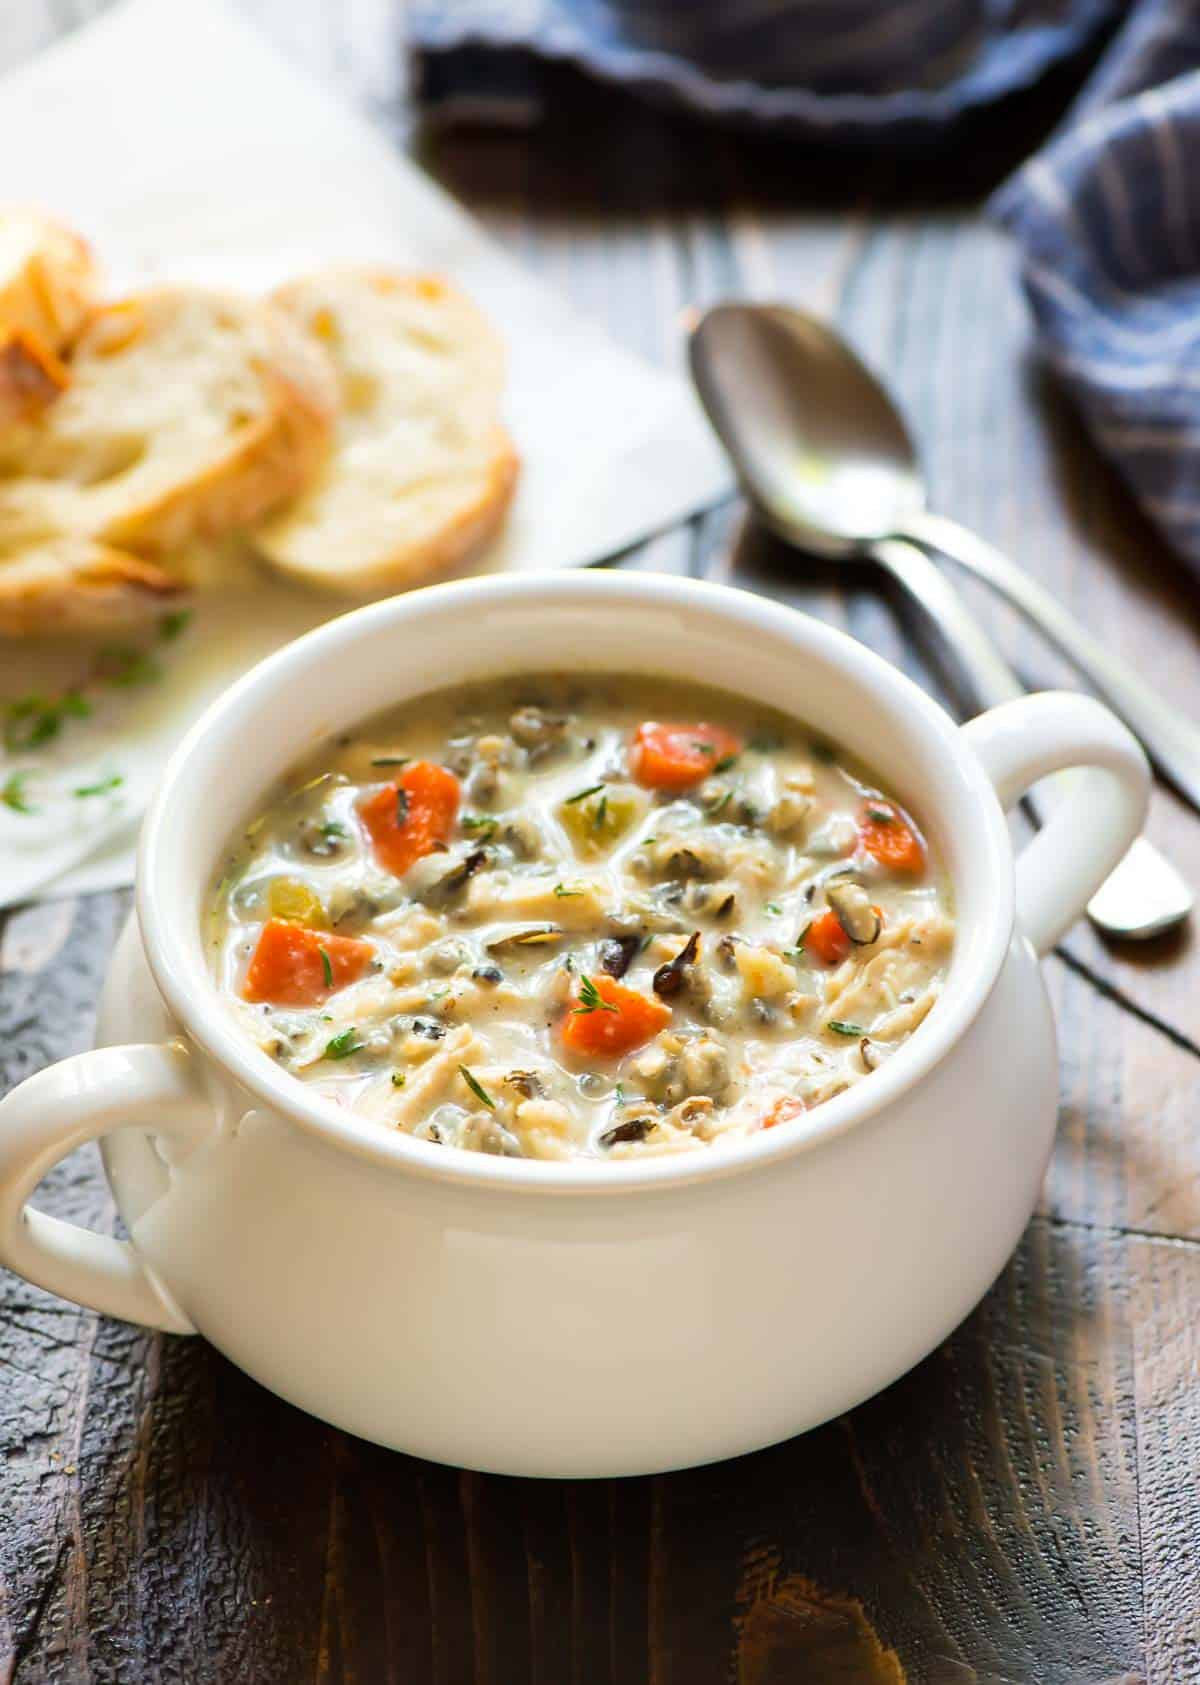 creamy chicken and wild rice soup (made in an Instant Pot), served in a white soup crock